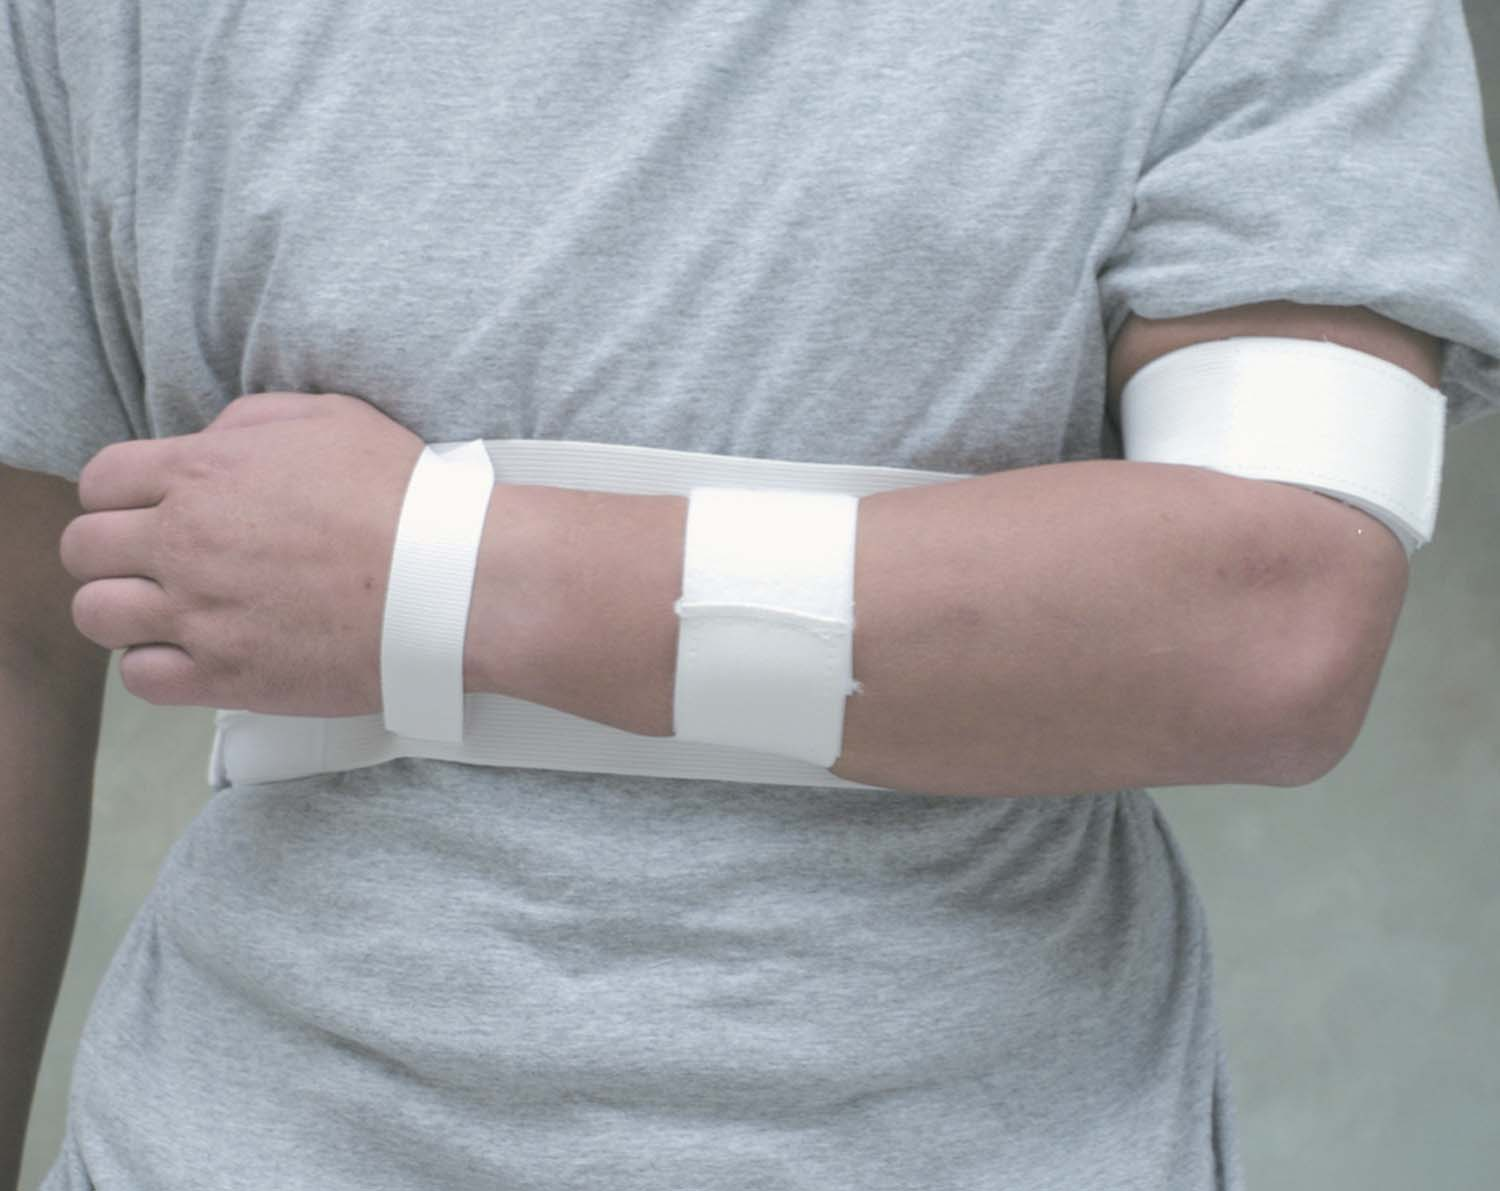 shoulder-immobilizer-medium-633-6220-1922-lr.jpg